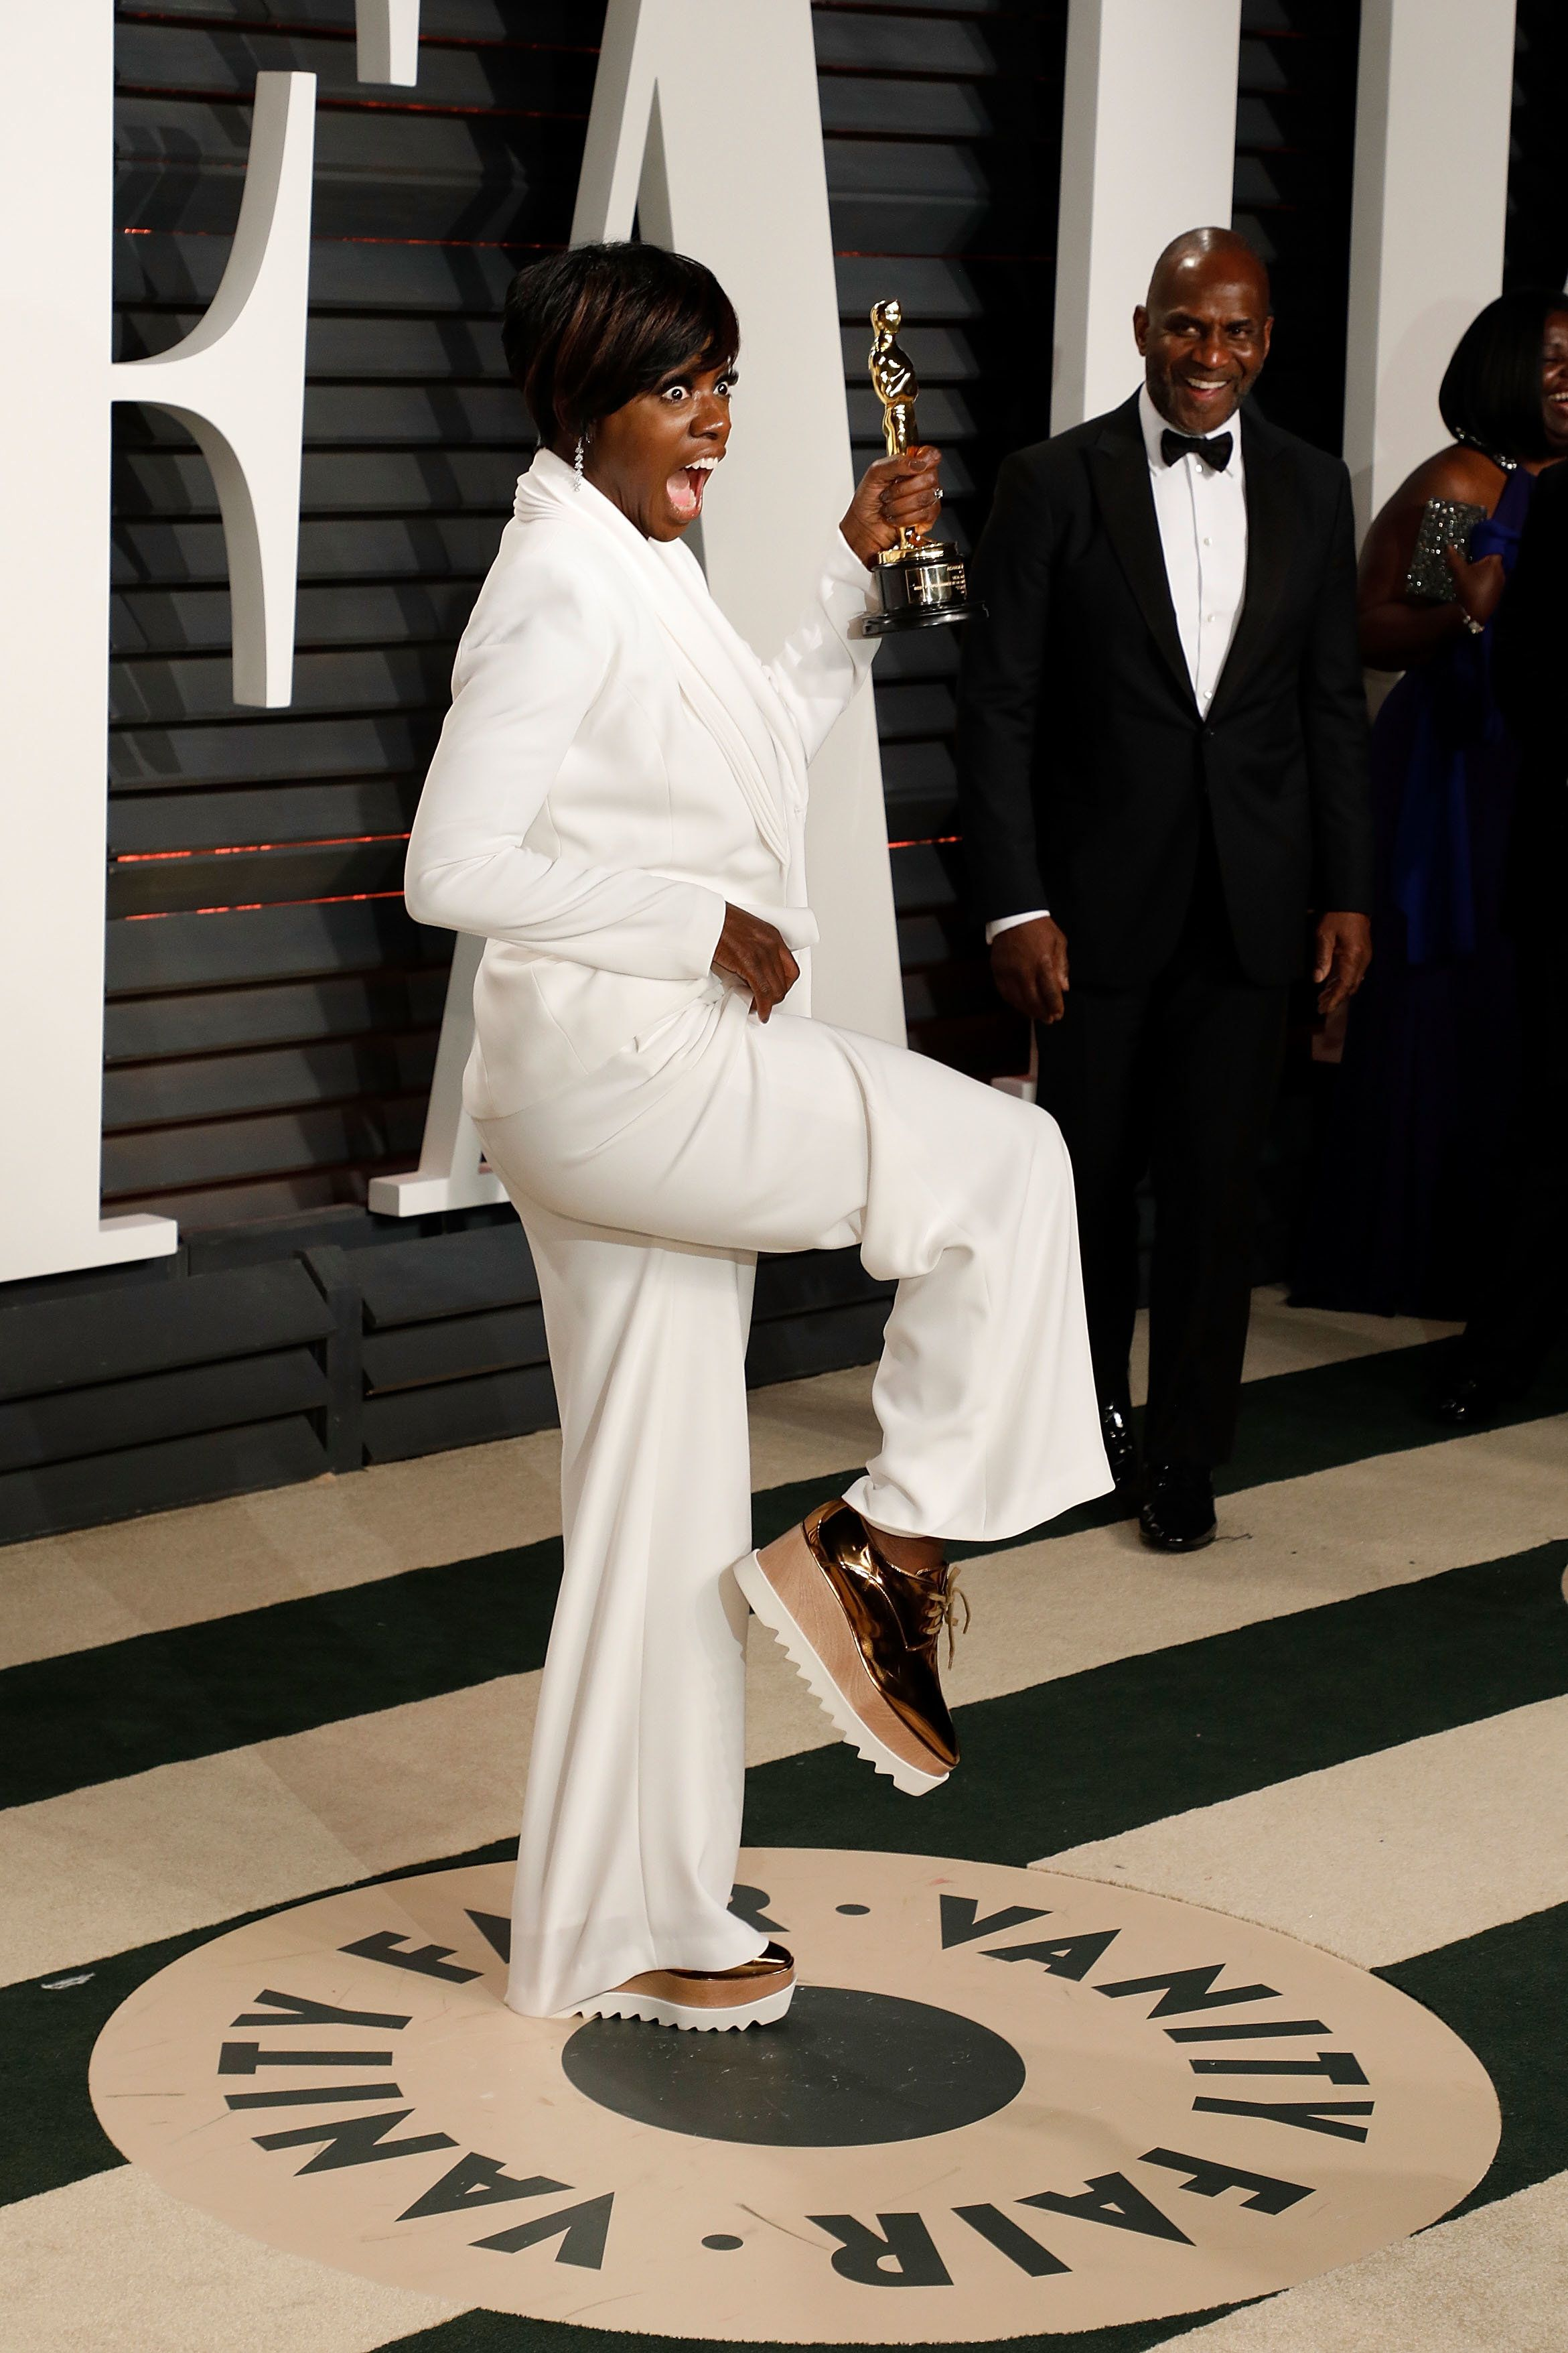 BEVERLY HILLS, CA - FEBRUARY 26:  Viola Davis attends the 2017 Vanity Fair Oscar Party at Wallis Annenberg Center for the Performing Arts on February 26, 2017 in Beverly Hills, California.  (Photo by Taylor Hill/Getty Images)